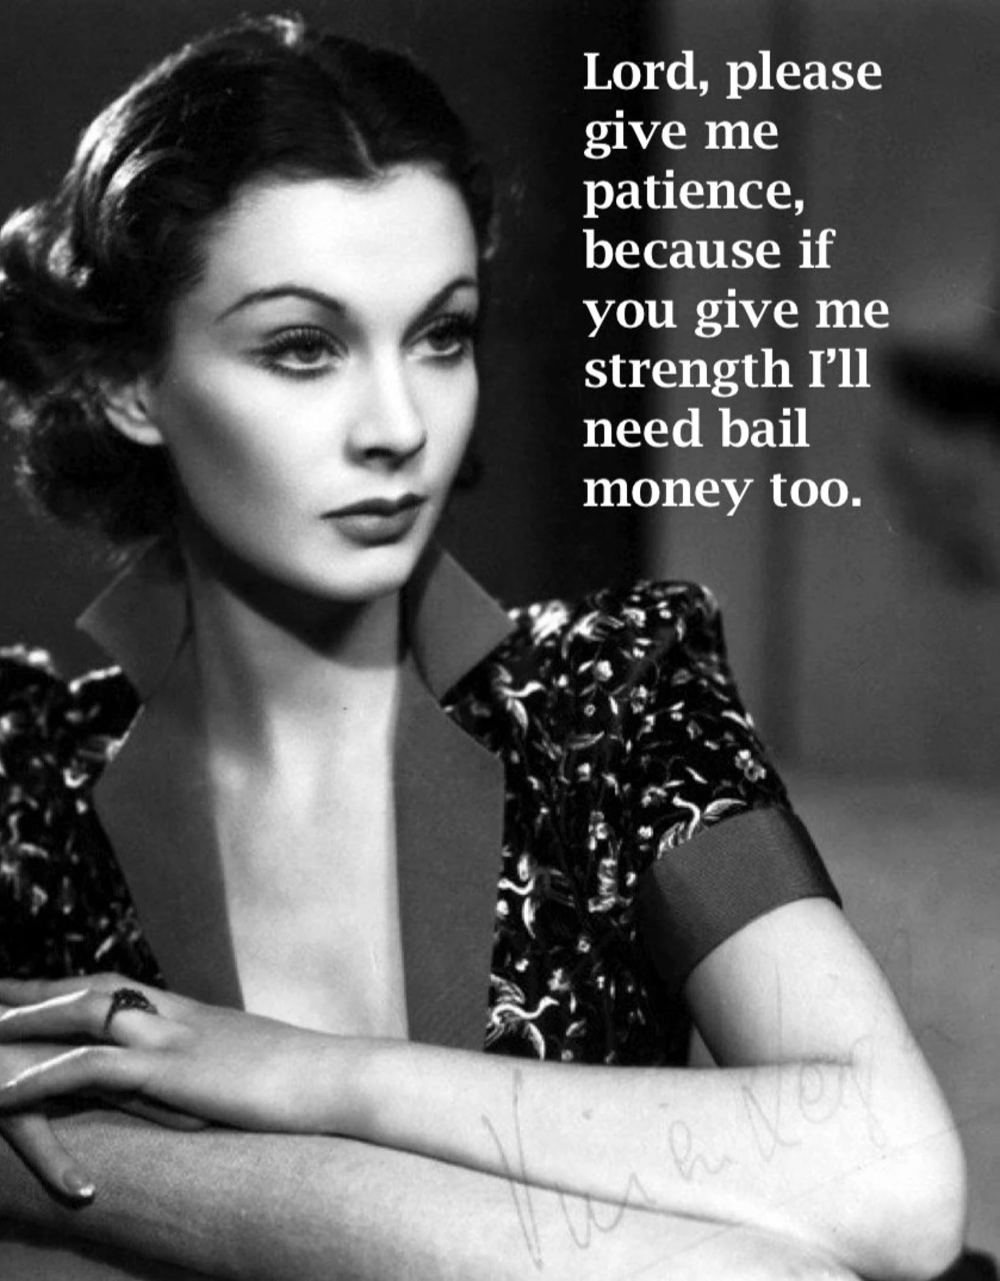 Lord Give Me Patience ... just for fun, snarky, serenity prayer, thinking of you, funny, bail money, relationship, friendship card [814-241]